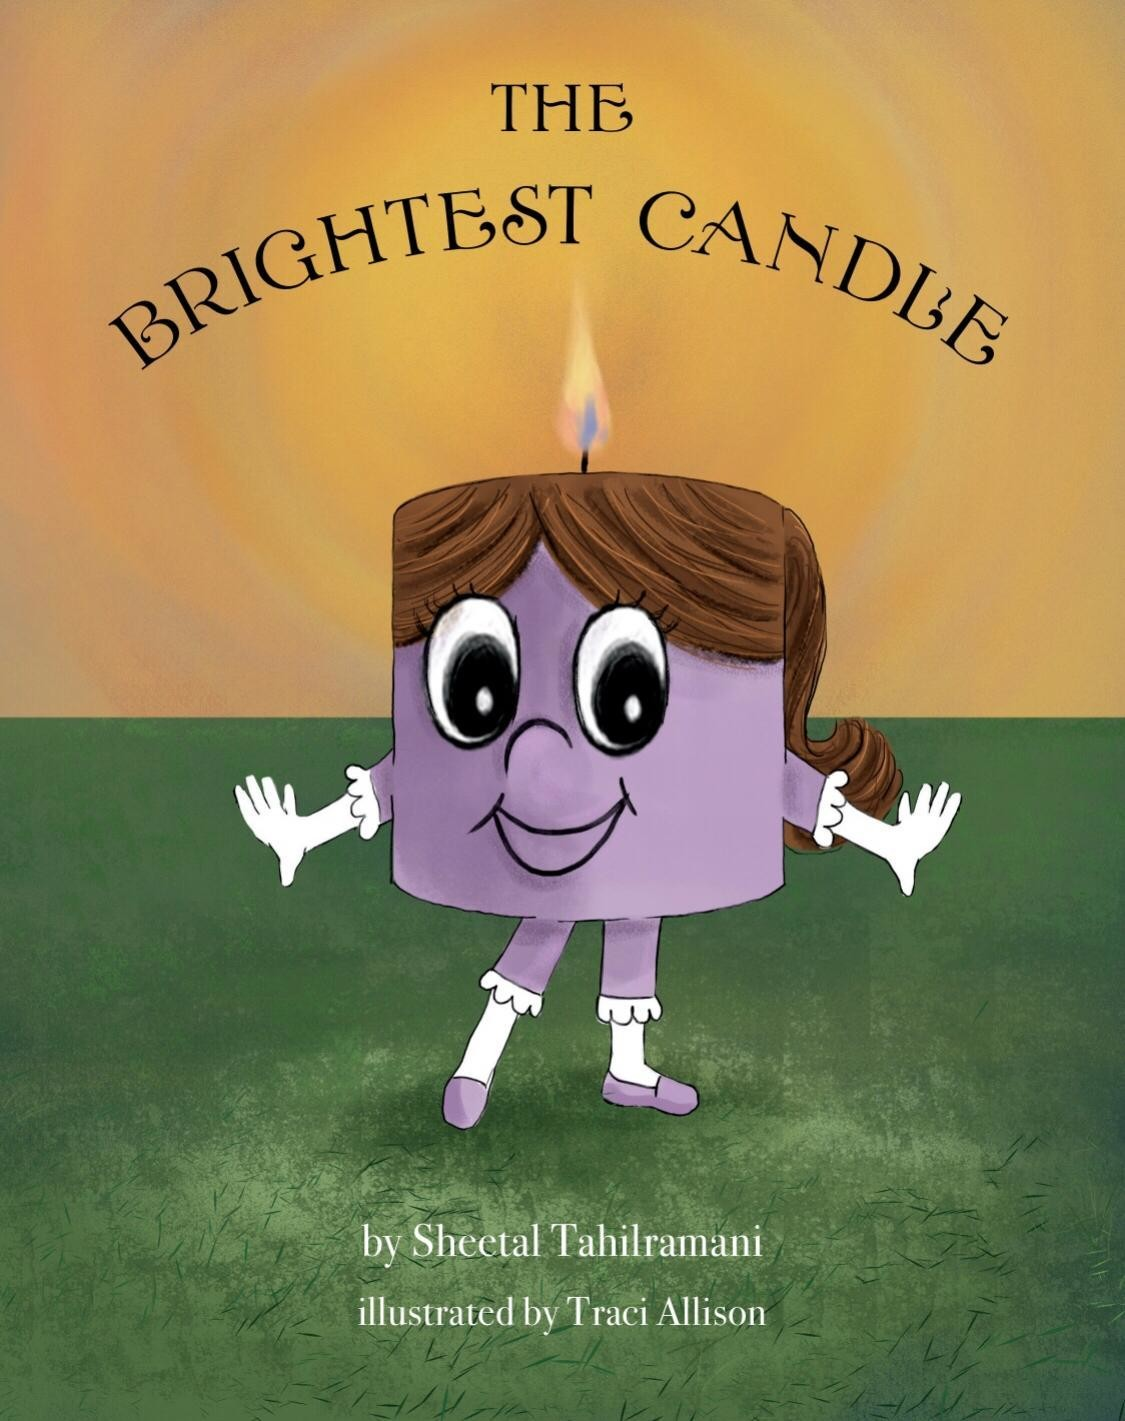 The Brightest Candle